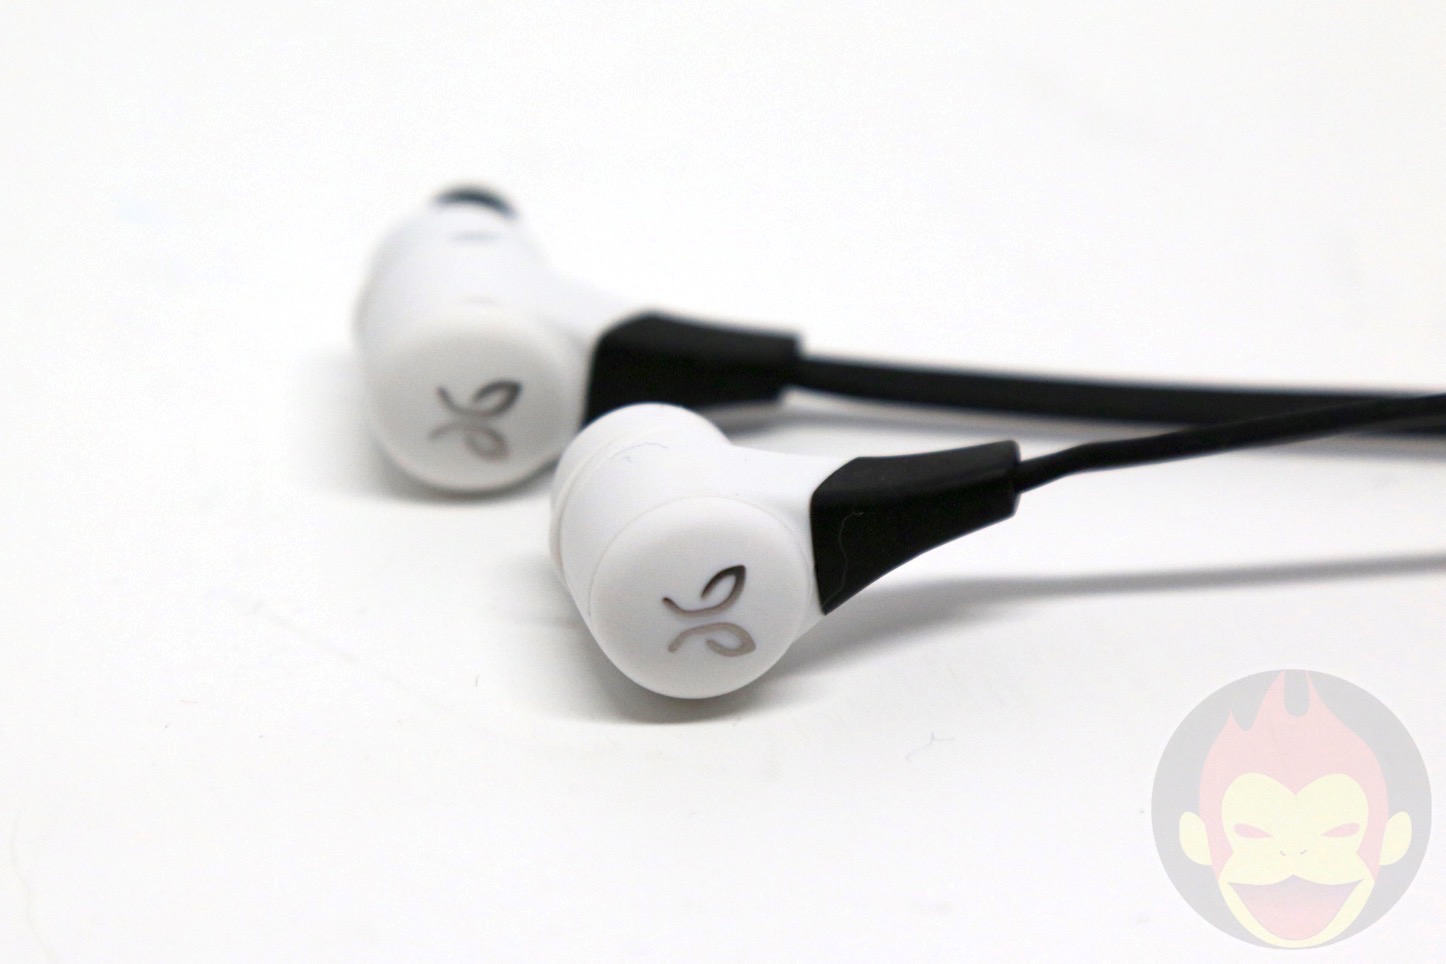 Jaybird-X2-Wireless-Earphones-10.jpg